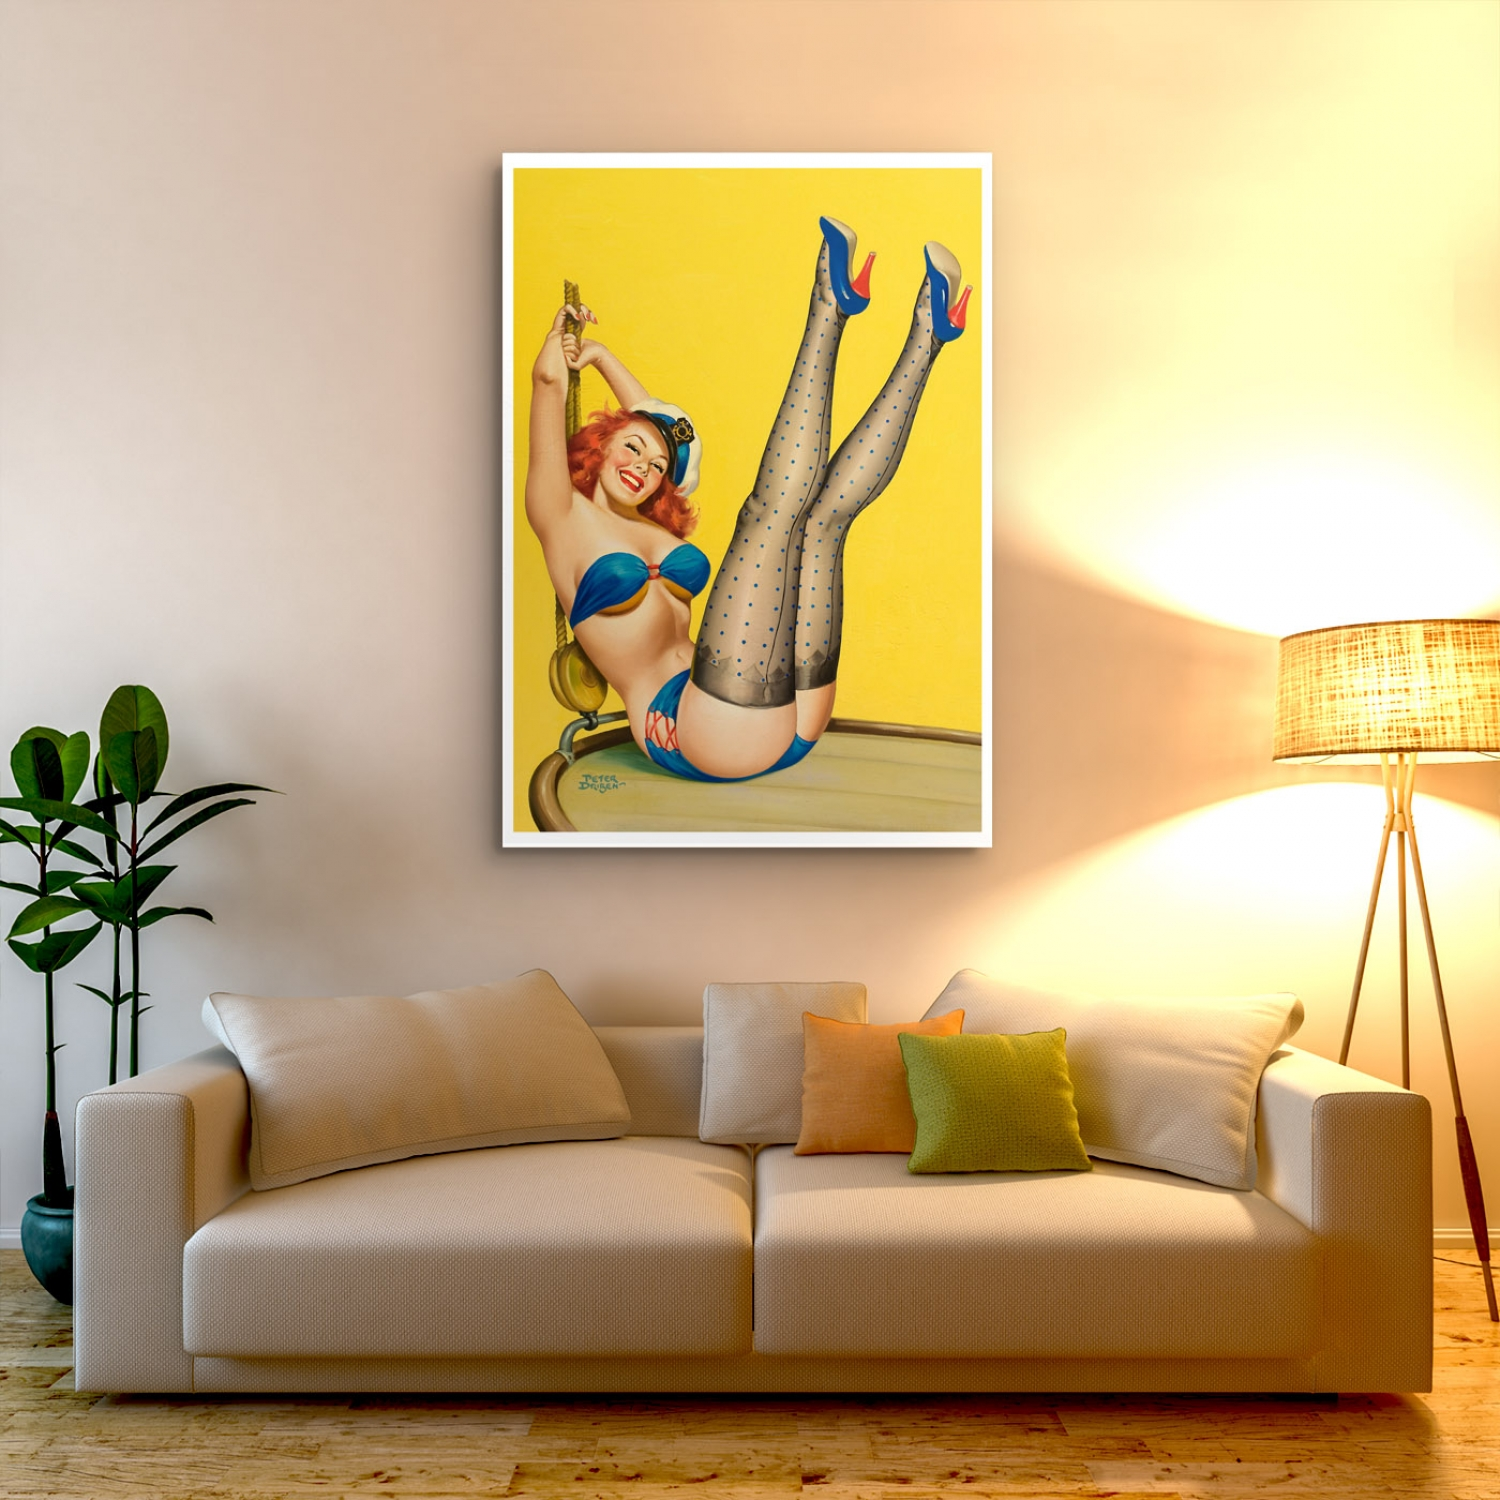 First Mate | Retro Pinup Girl Poster | Just Posters.com.au